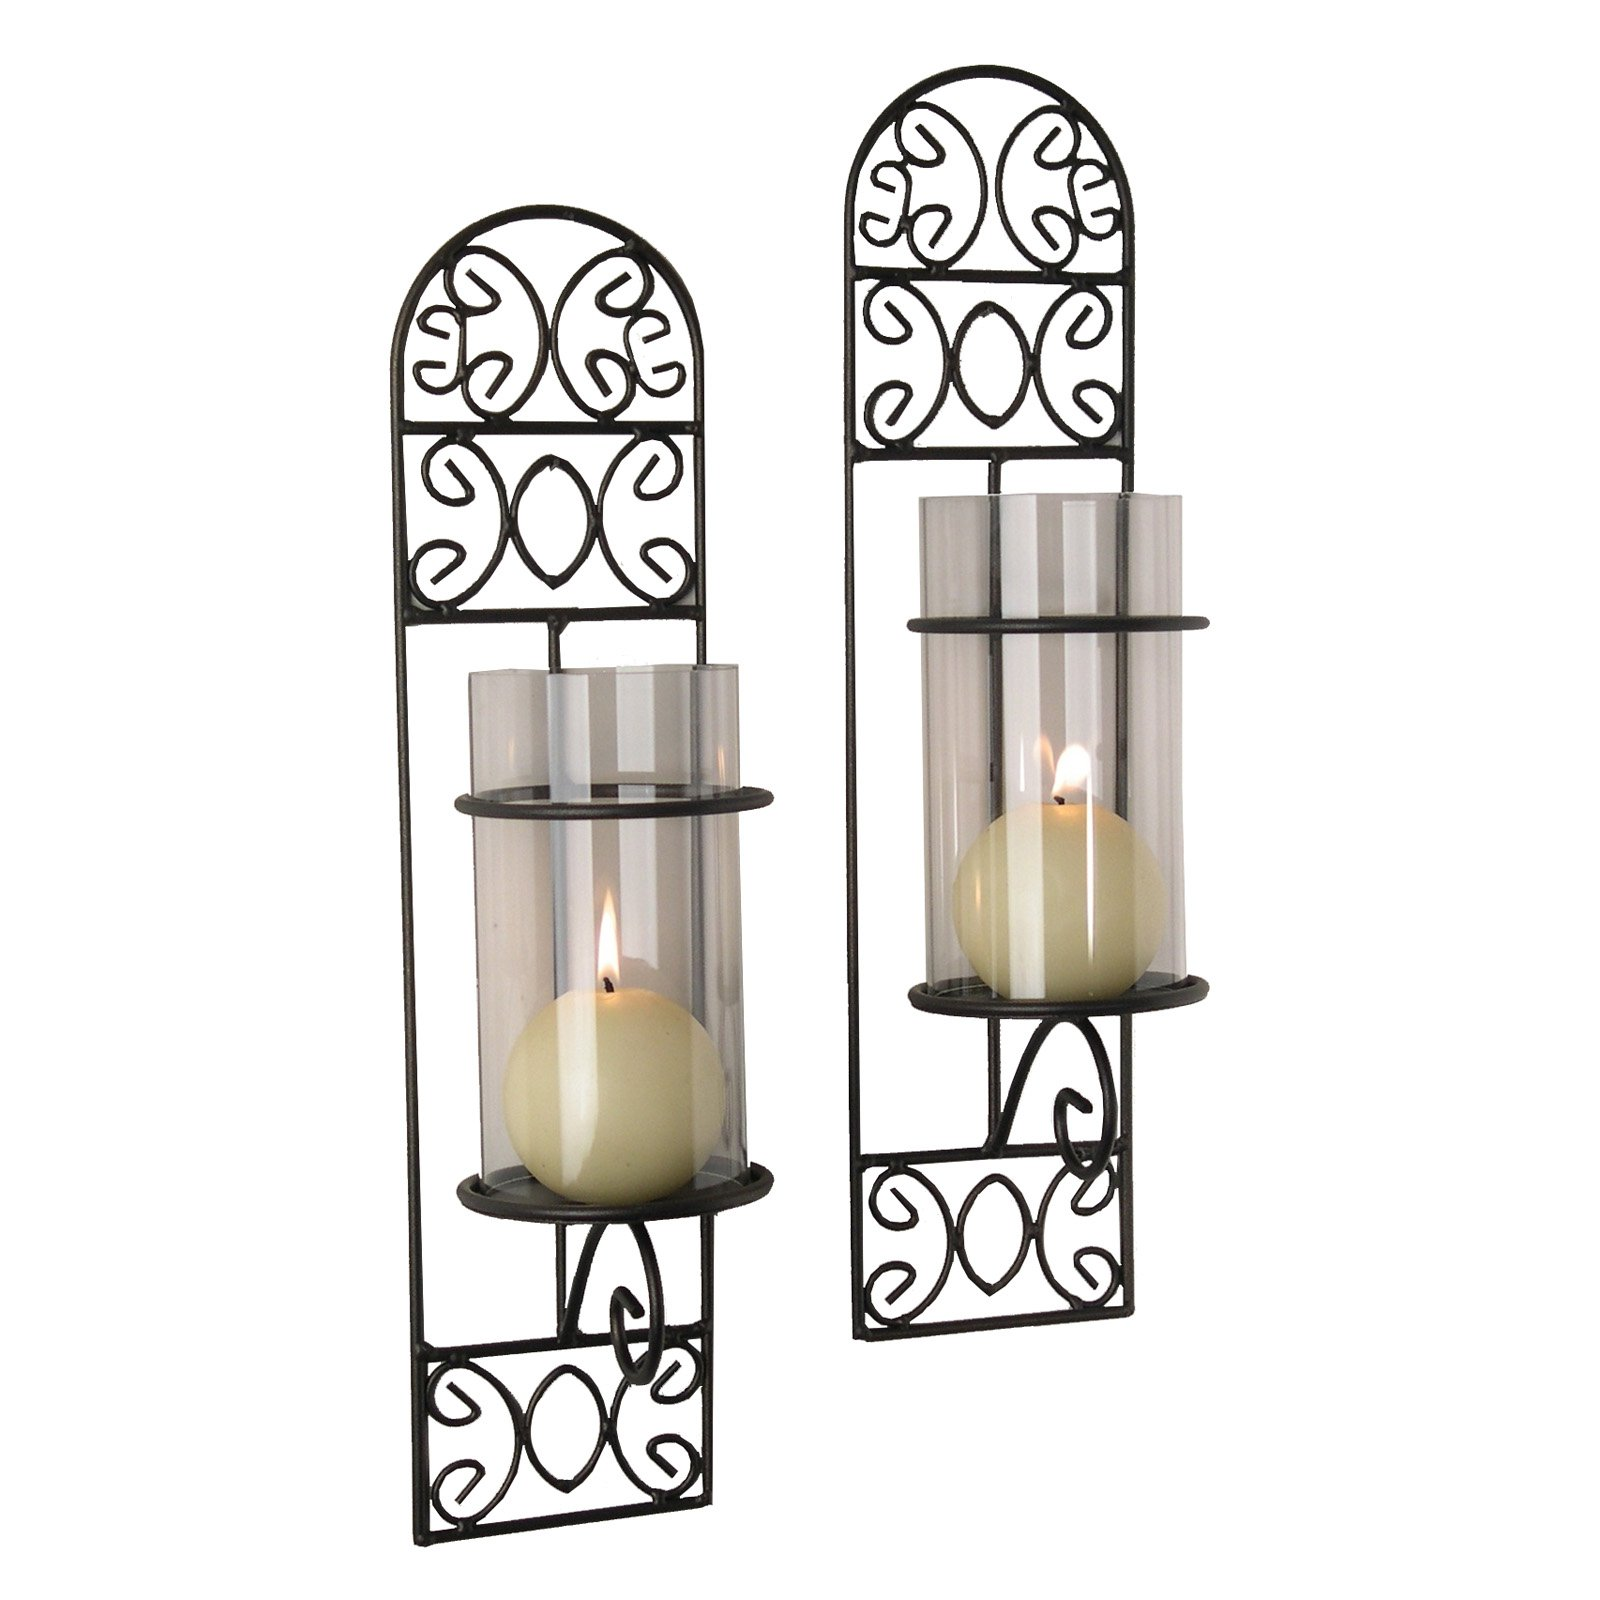 Danya B Madeira Metal Filigree Wall Sconces Set of 2 by Overstock